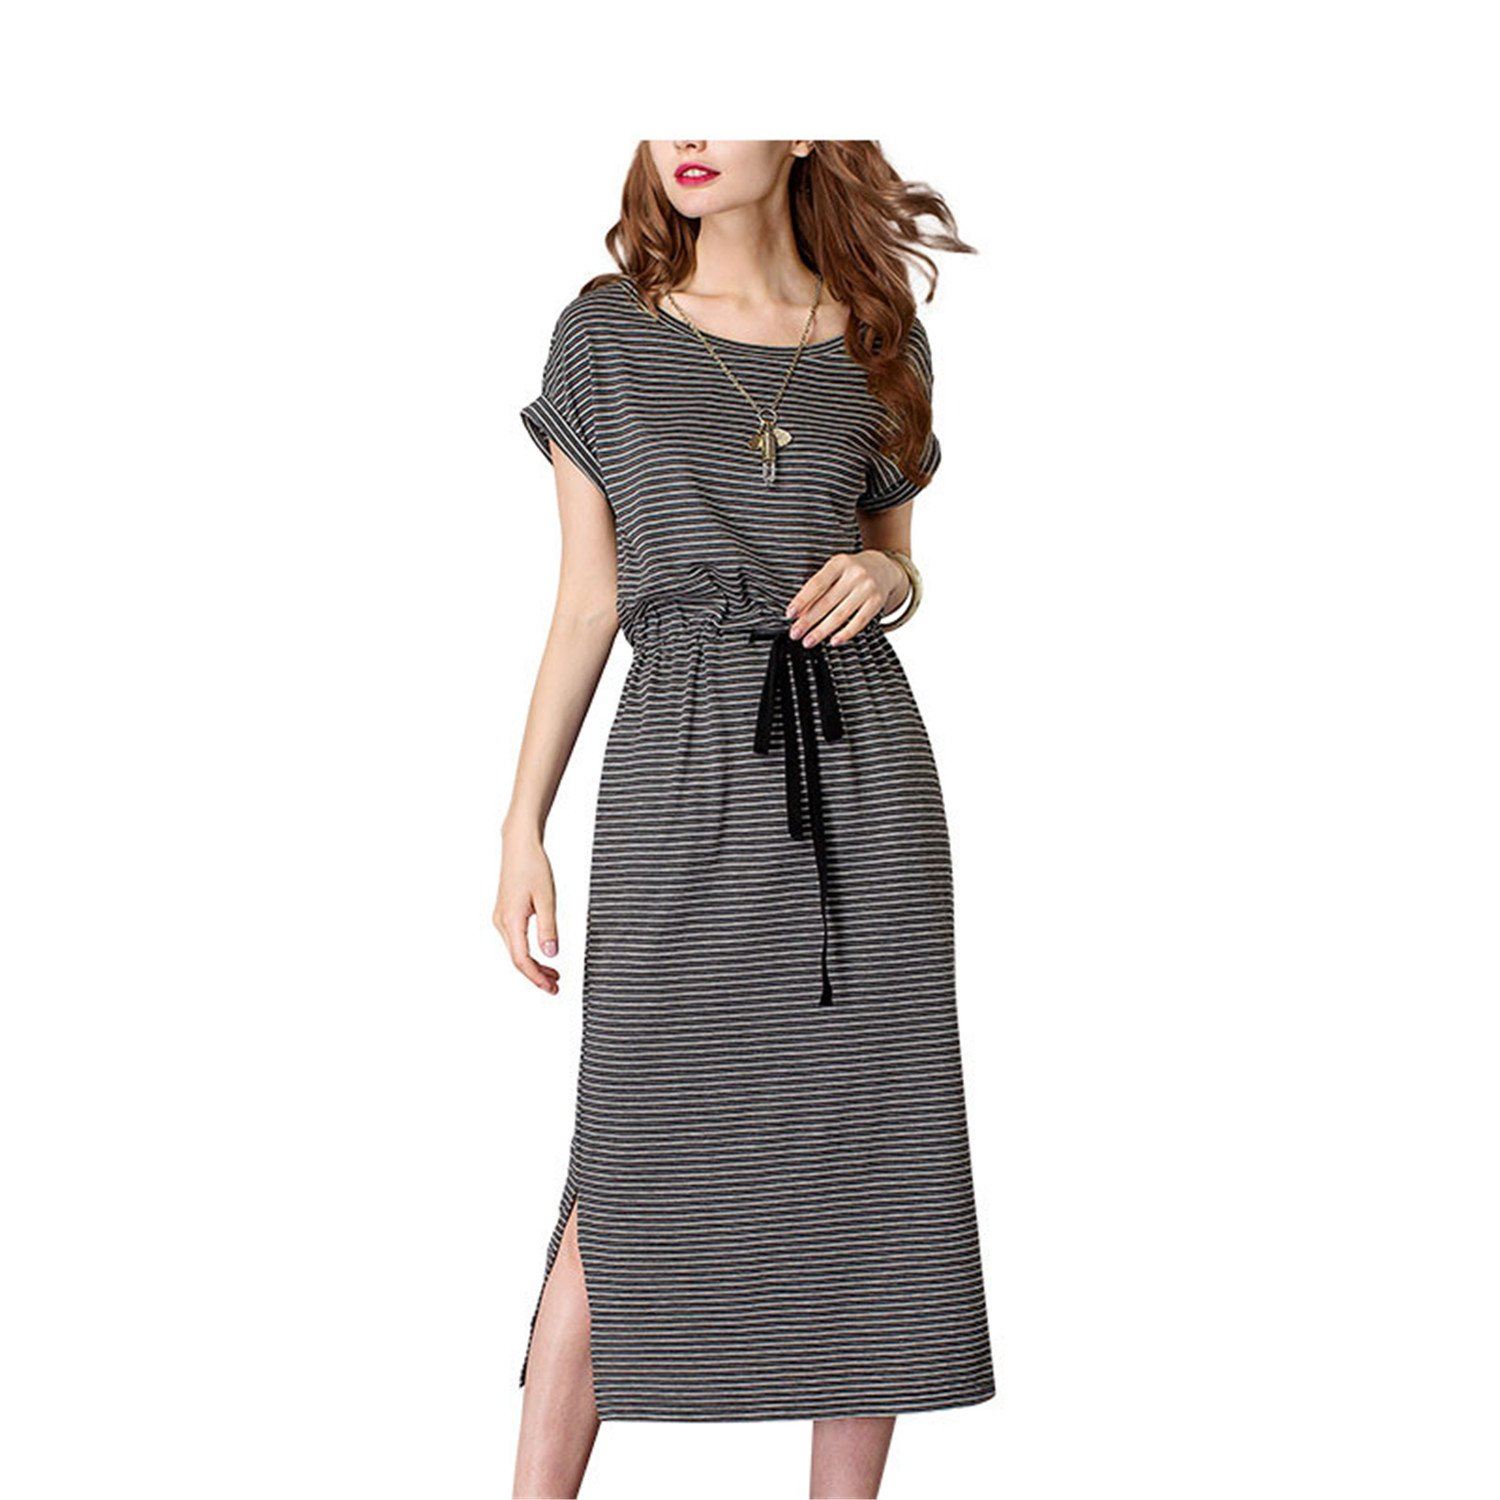 Striped Sashes Split Dress Sleee O-Neck Mid Waist Long Dress for Women estidos